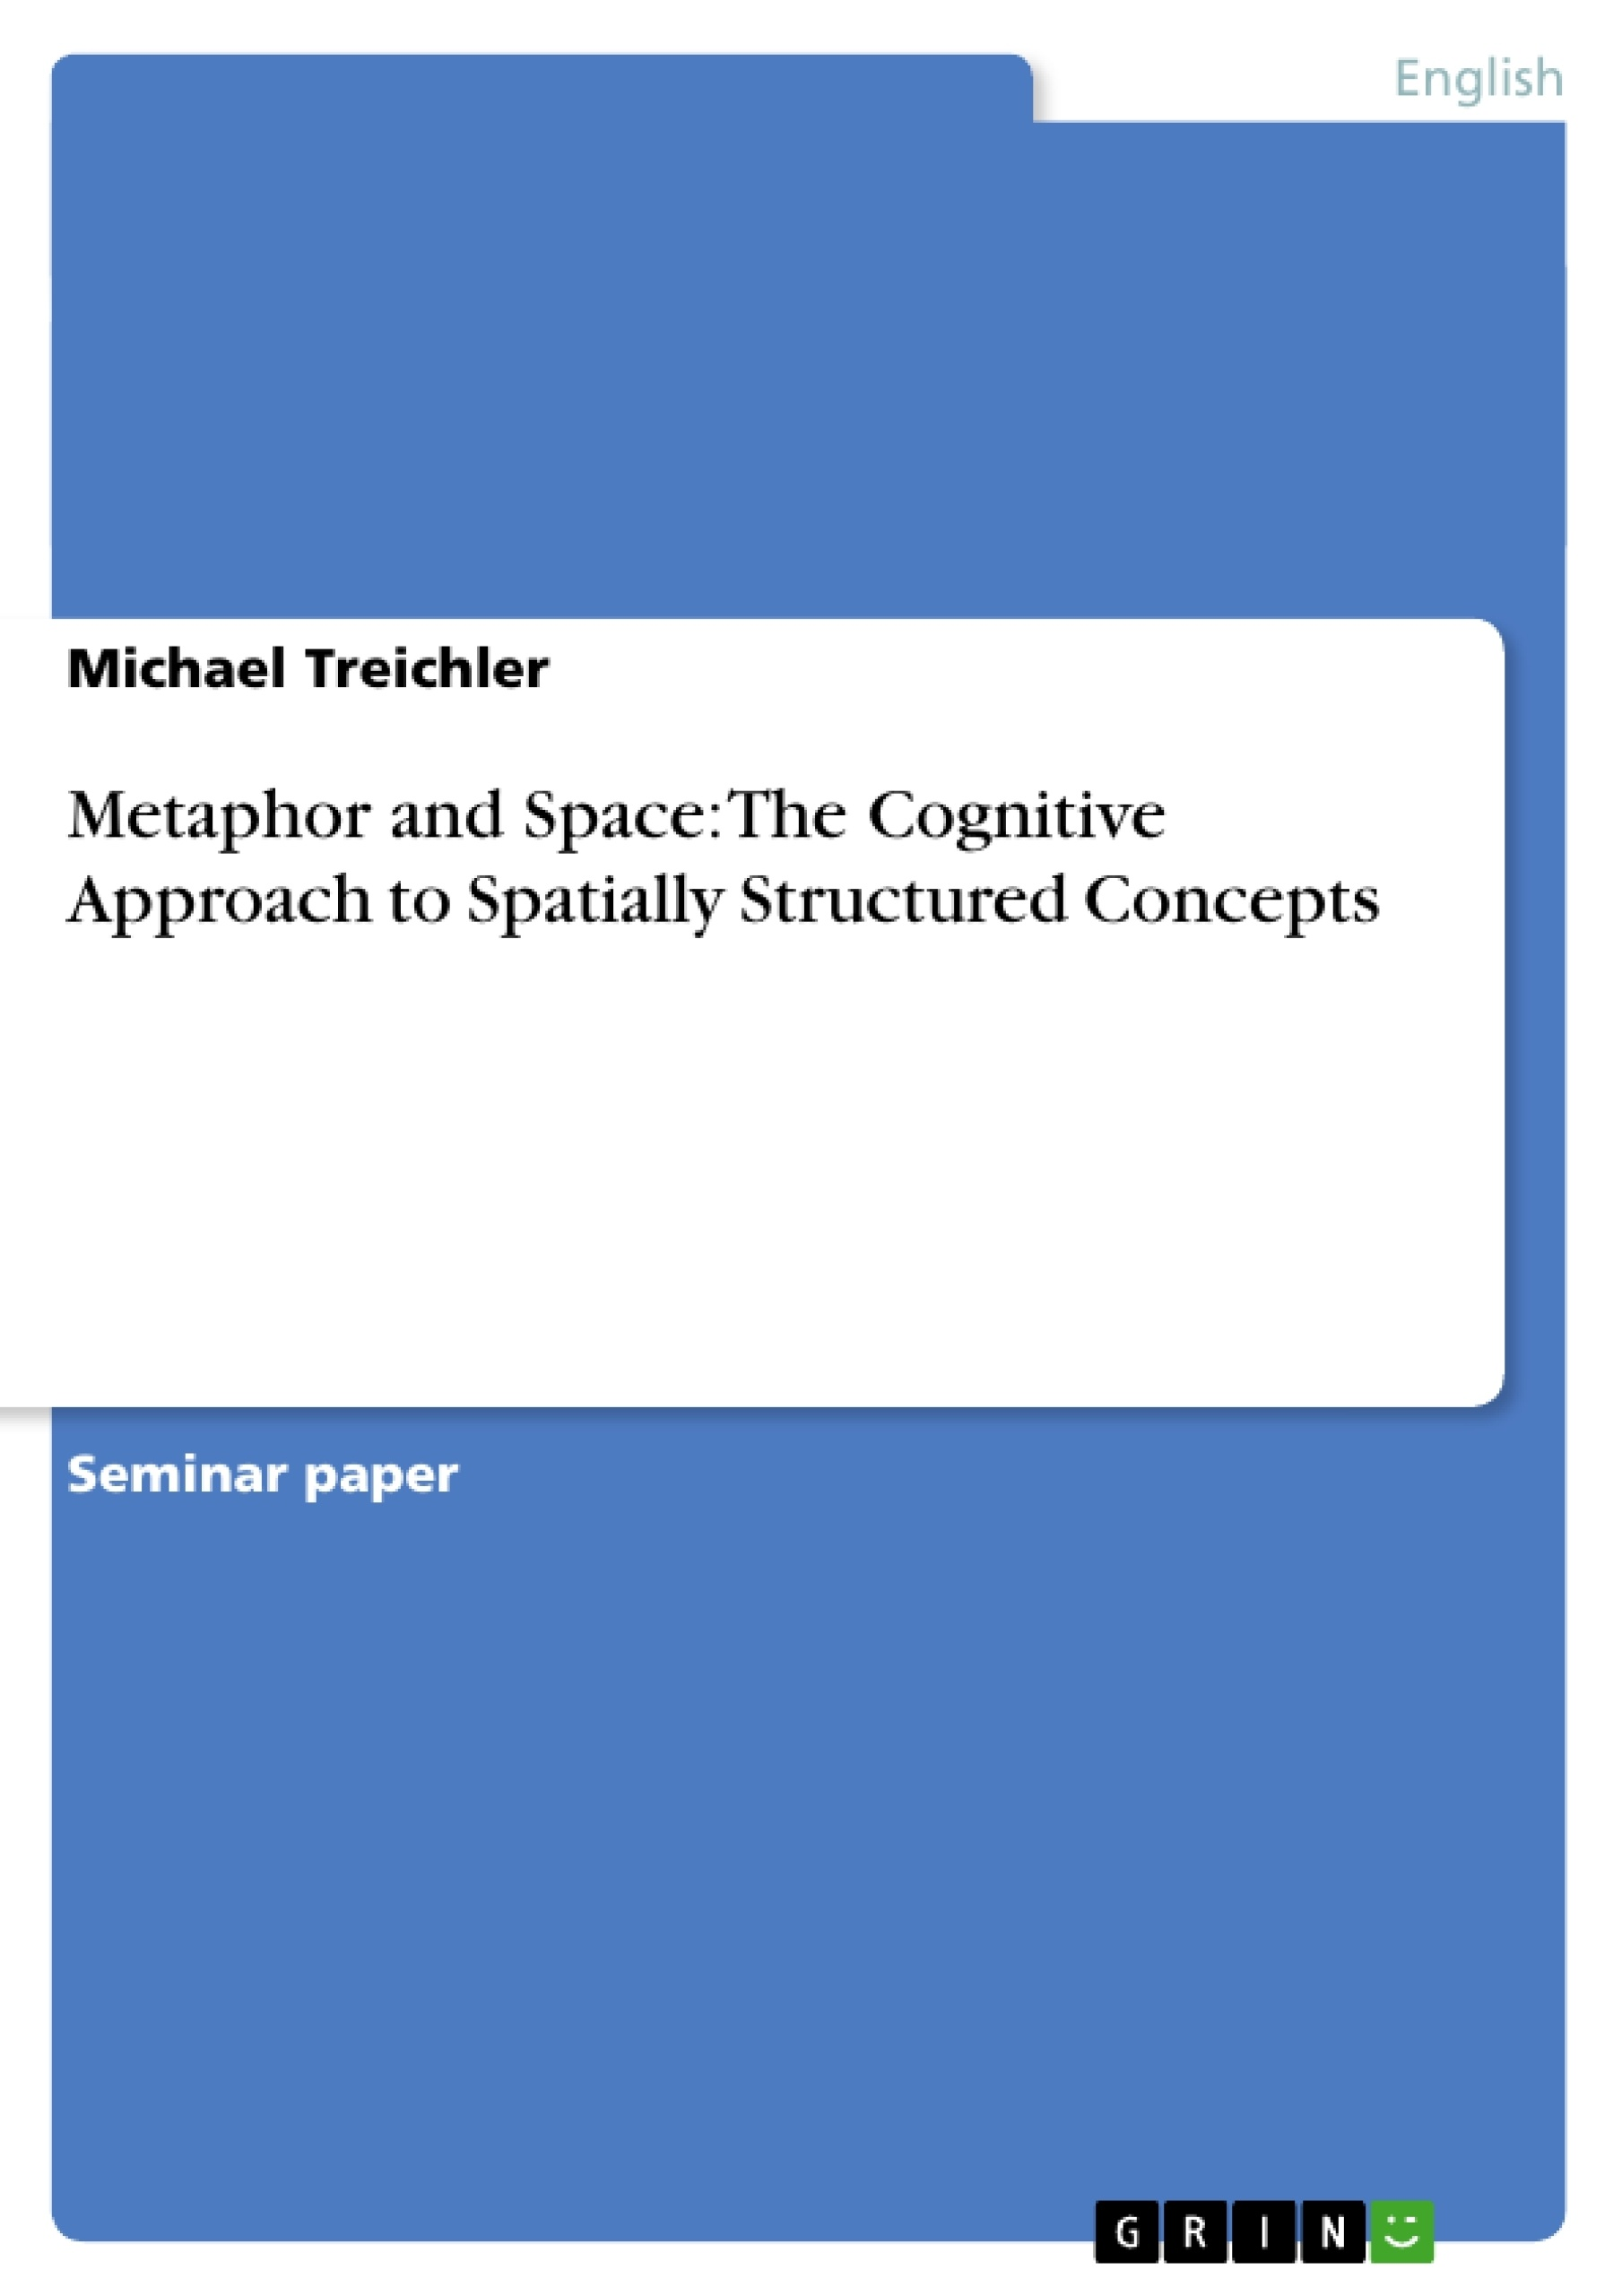 Title: Metaphor and Space: The Cognitive Approach to Spatially Structured Concepts